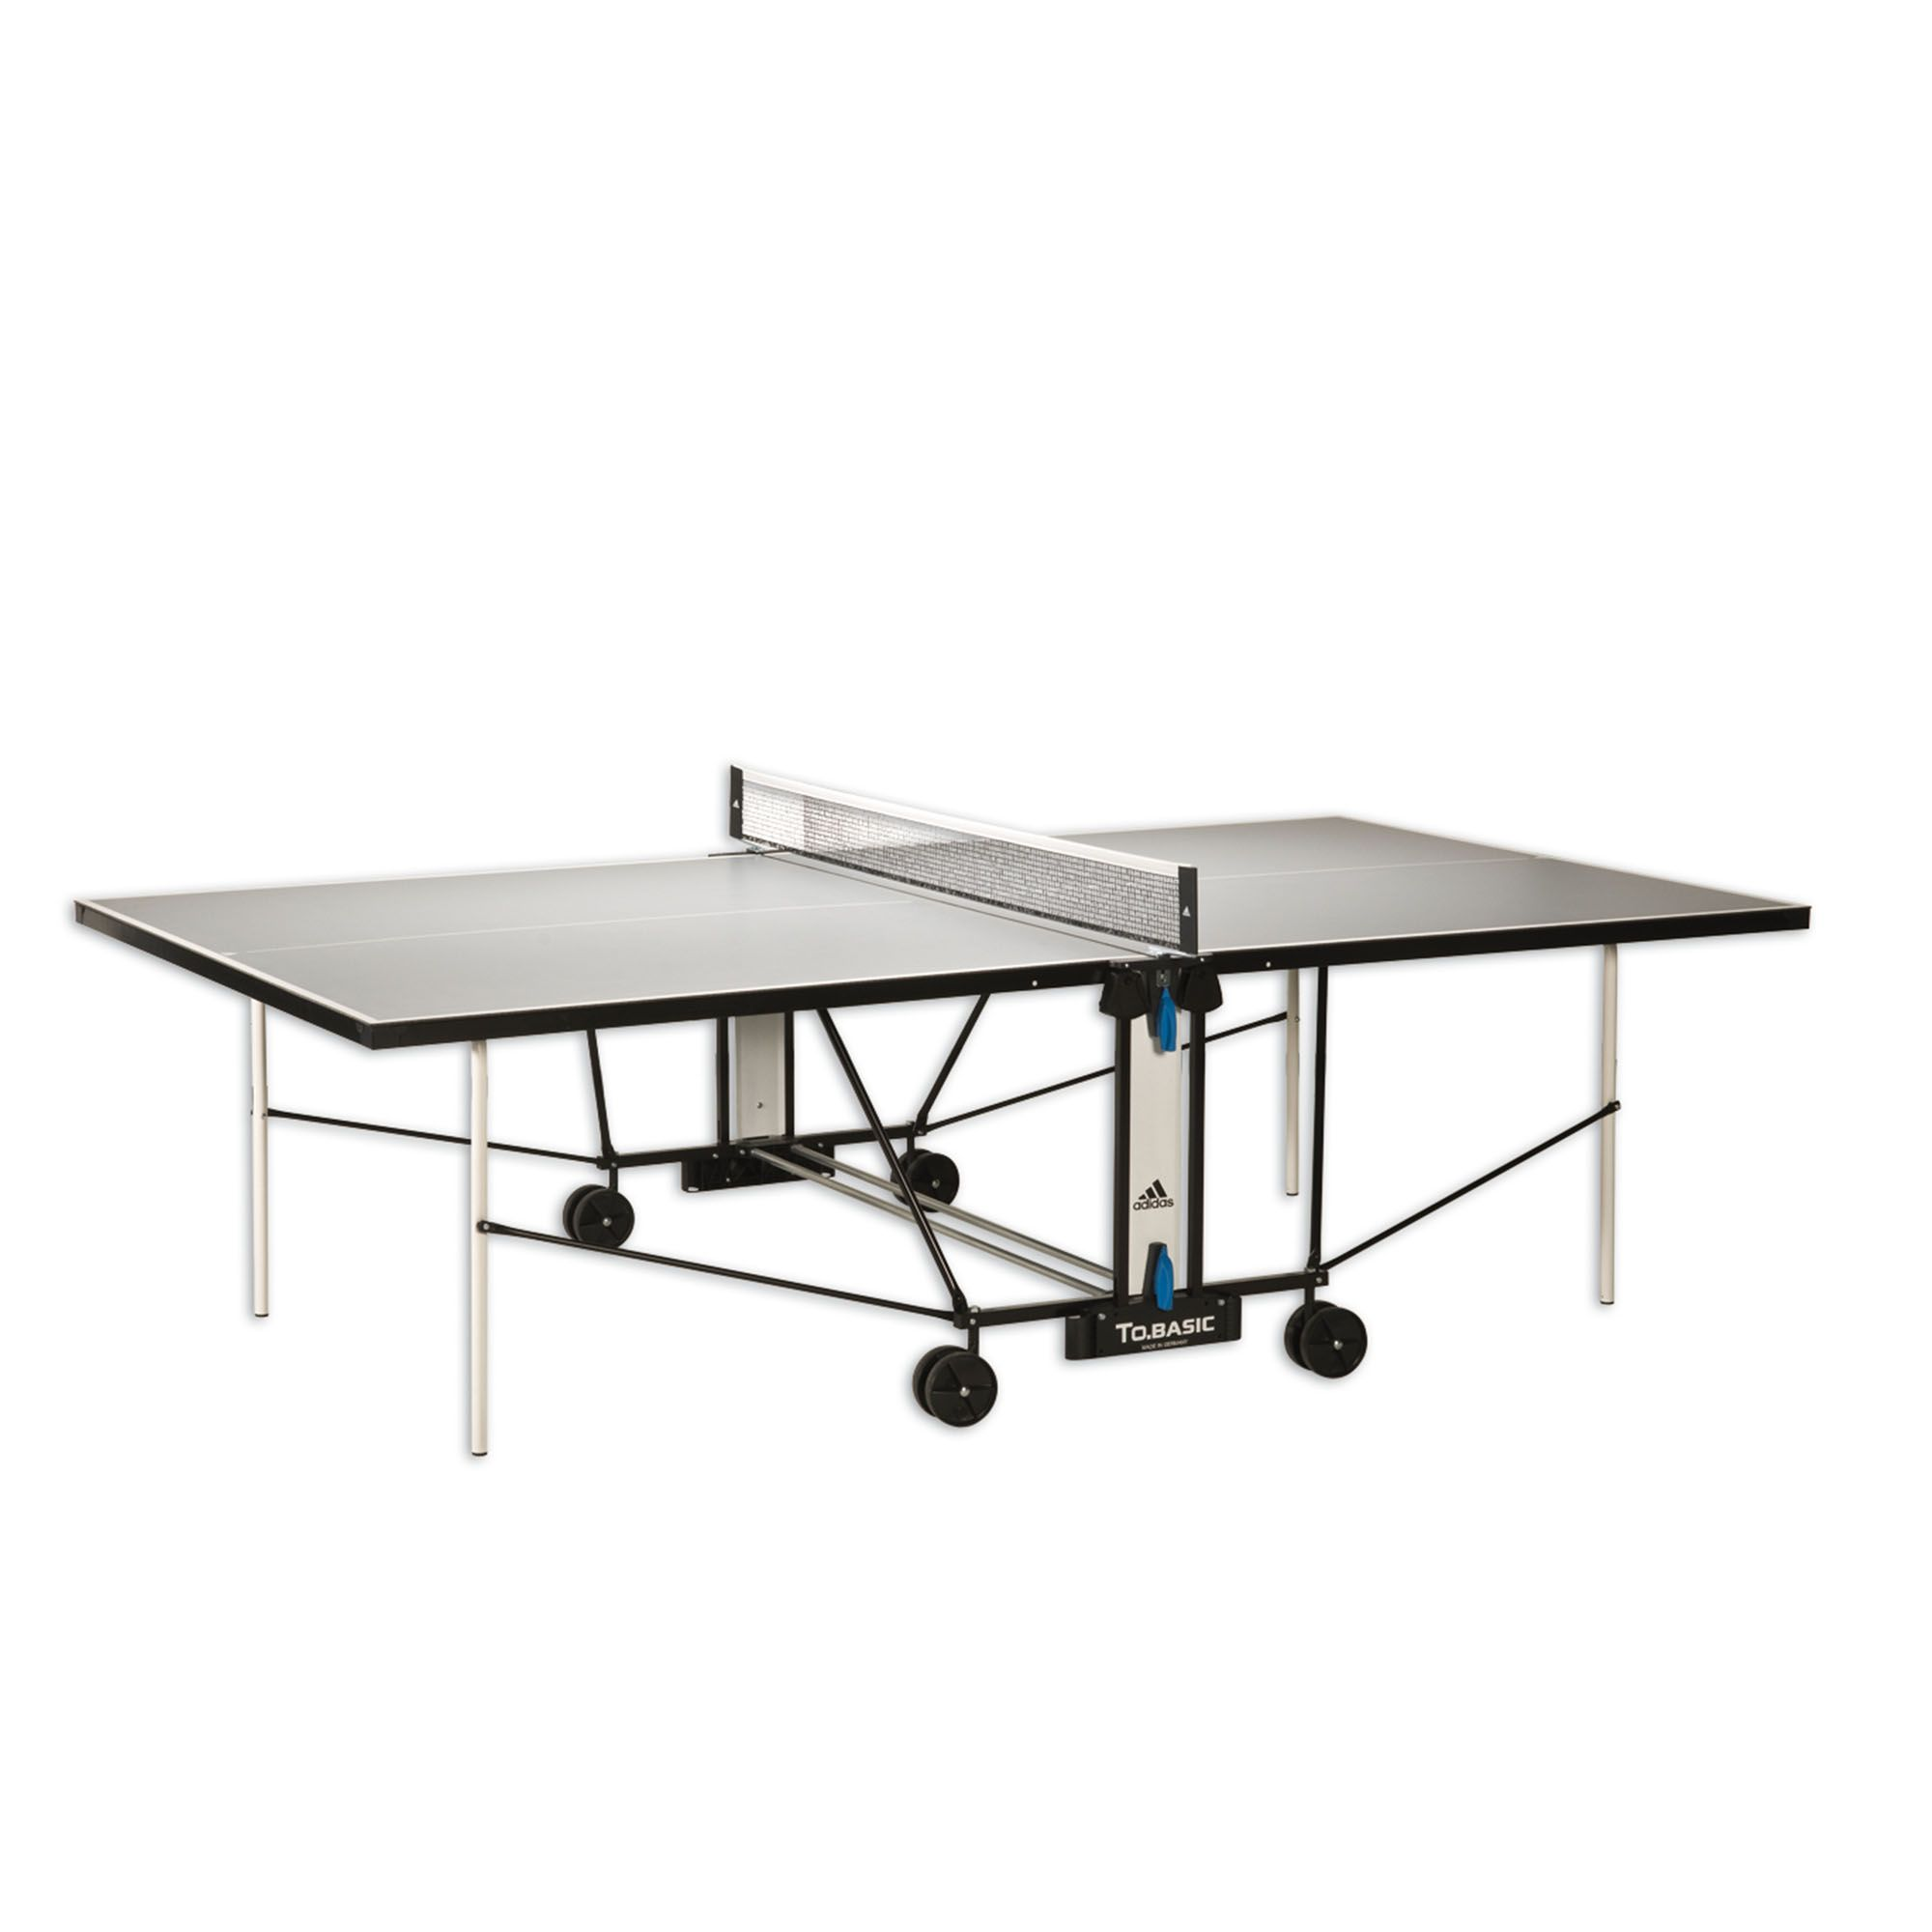 Adidas to basic outdoor table tennis table for Basic html table